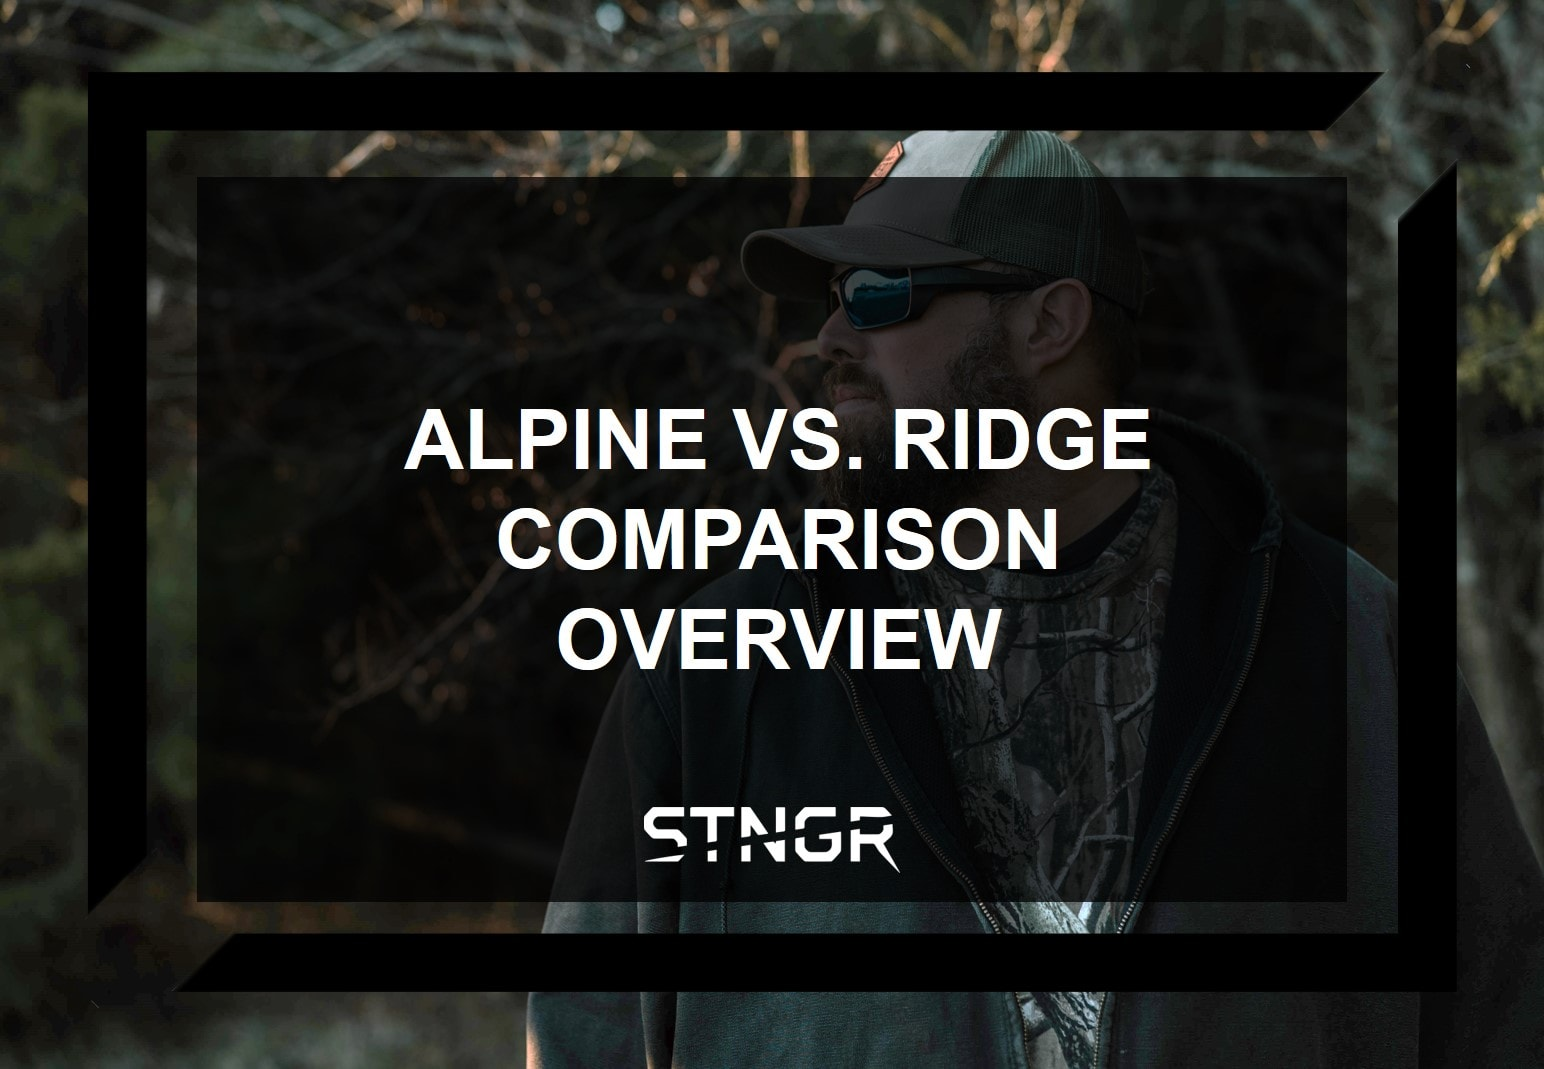 Alpine vs. Ridge Comparison Overview